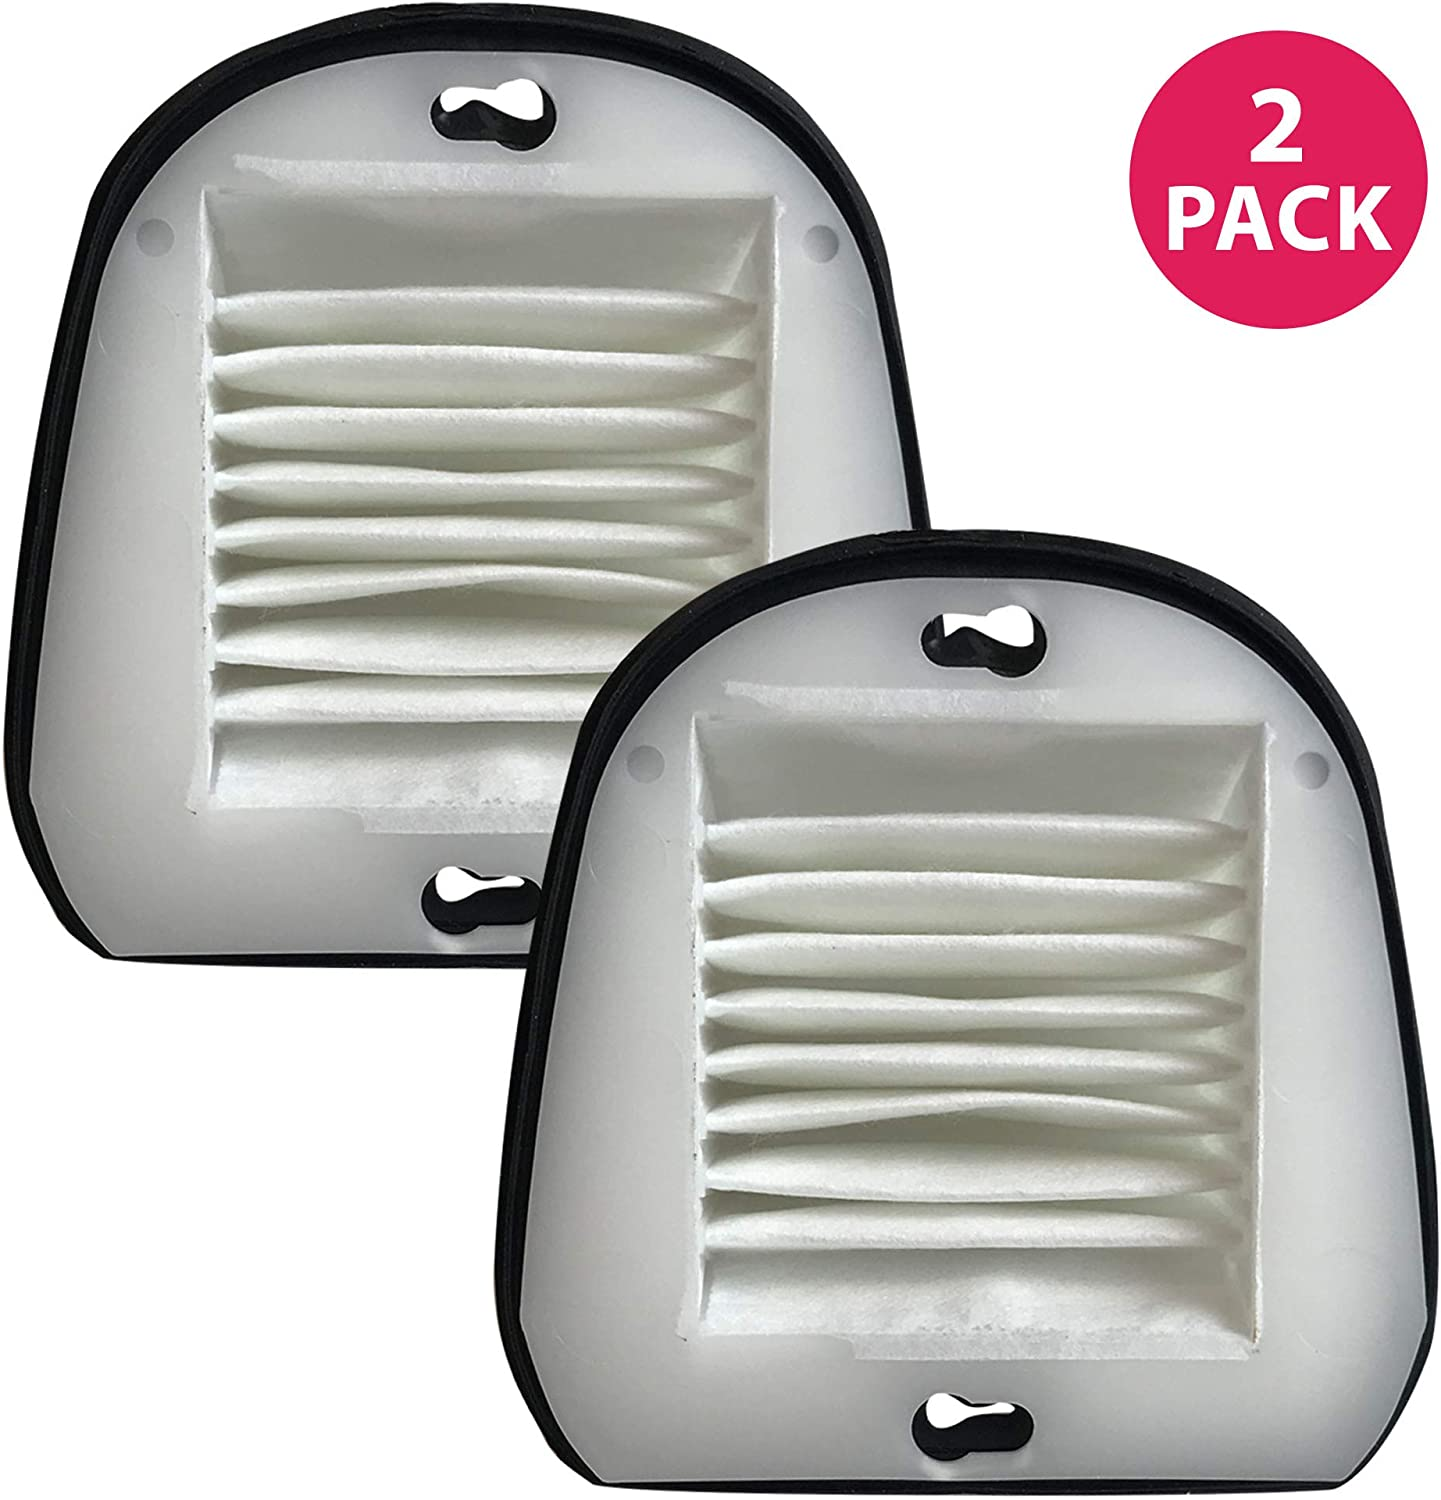 Crucial Vacuum Filter Replacement - Compatible with Black & Decker Part # 48G7, 2031473 203-1473 and Black & Decker VF20 Filter Fits Dustbuster - Washable, Reusable, Lightweight Filters (2 Pack)